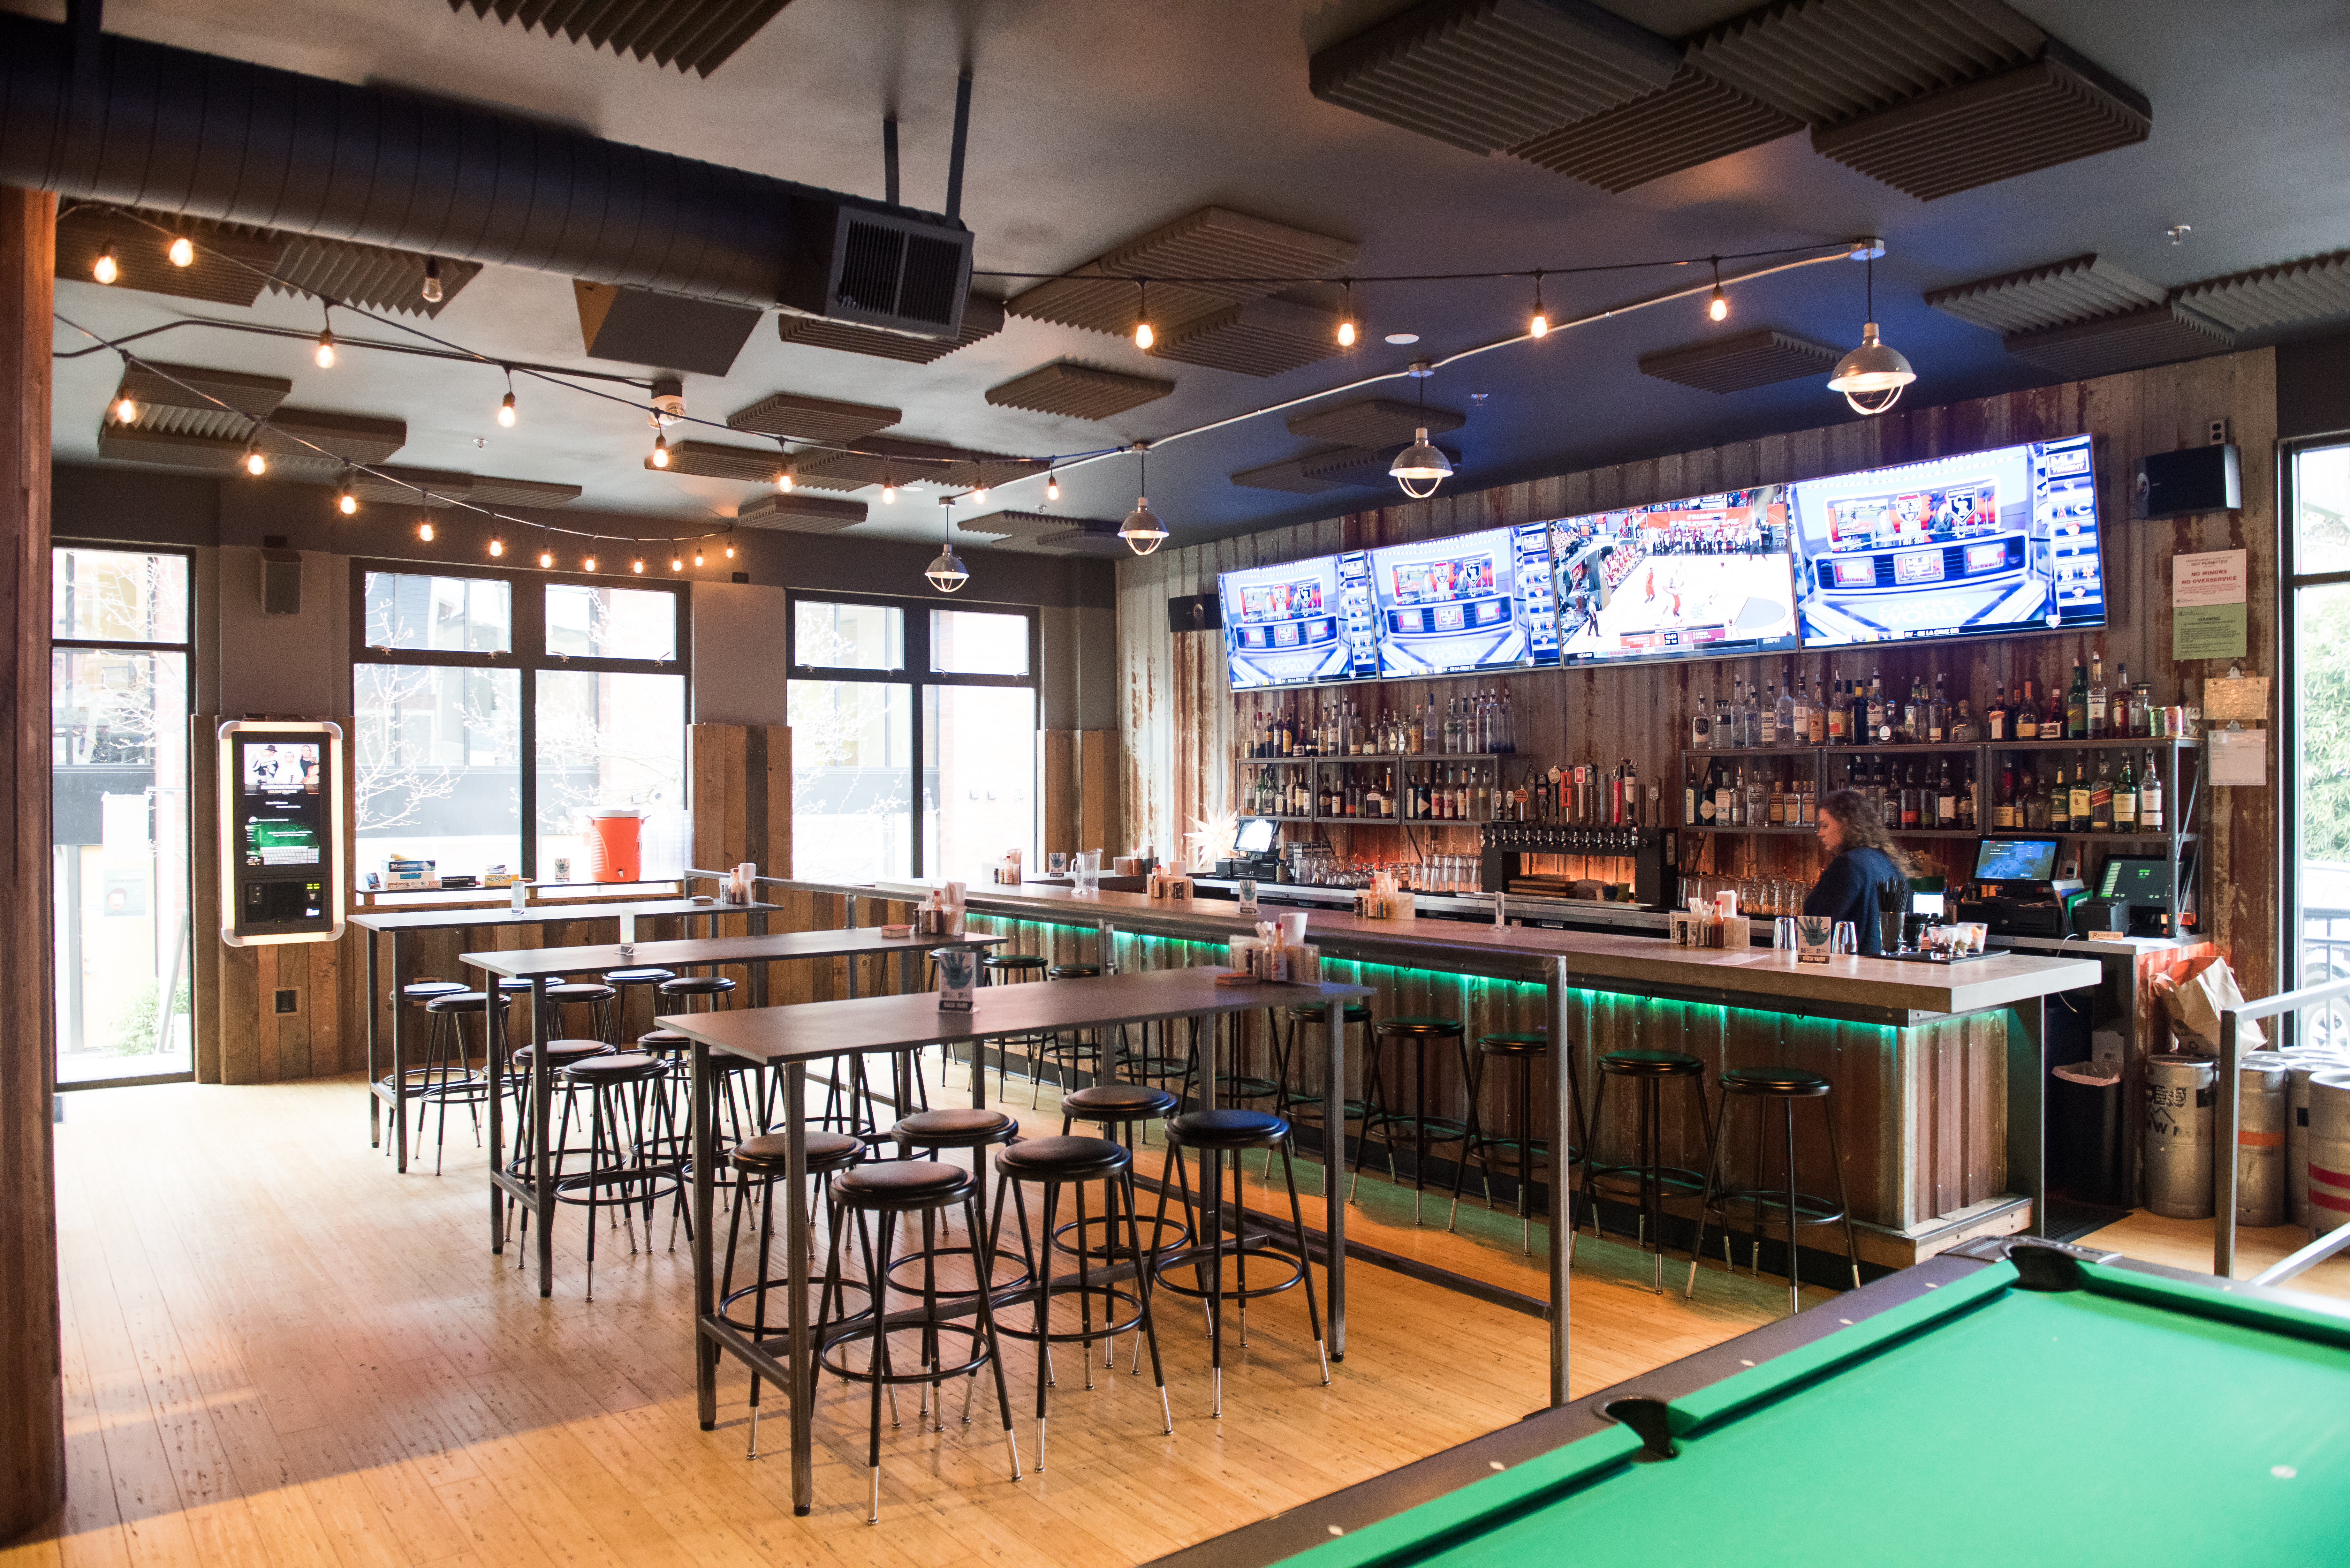 23 Great Bars With Activities - Seattle - The Infatuation